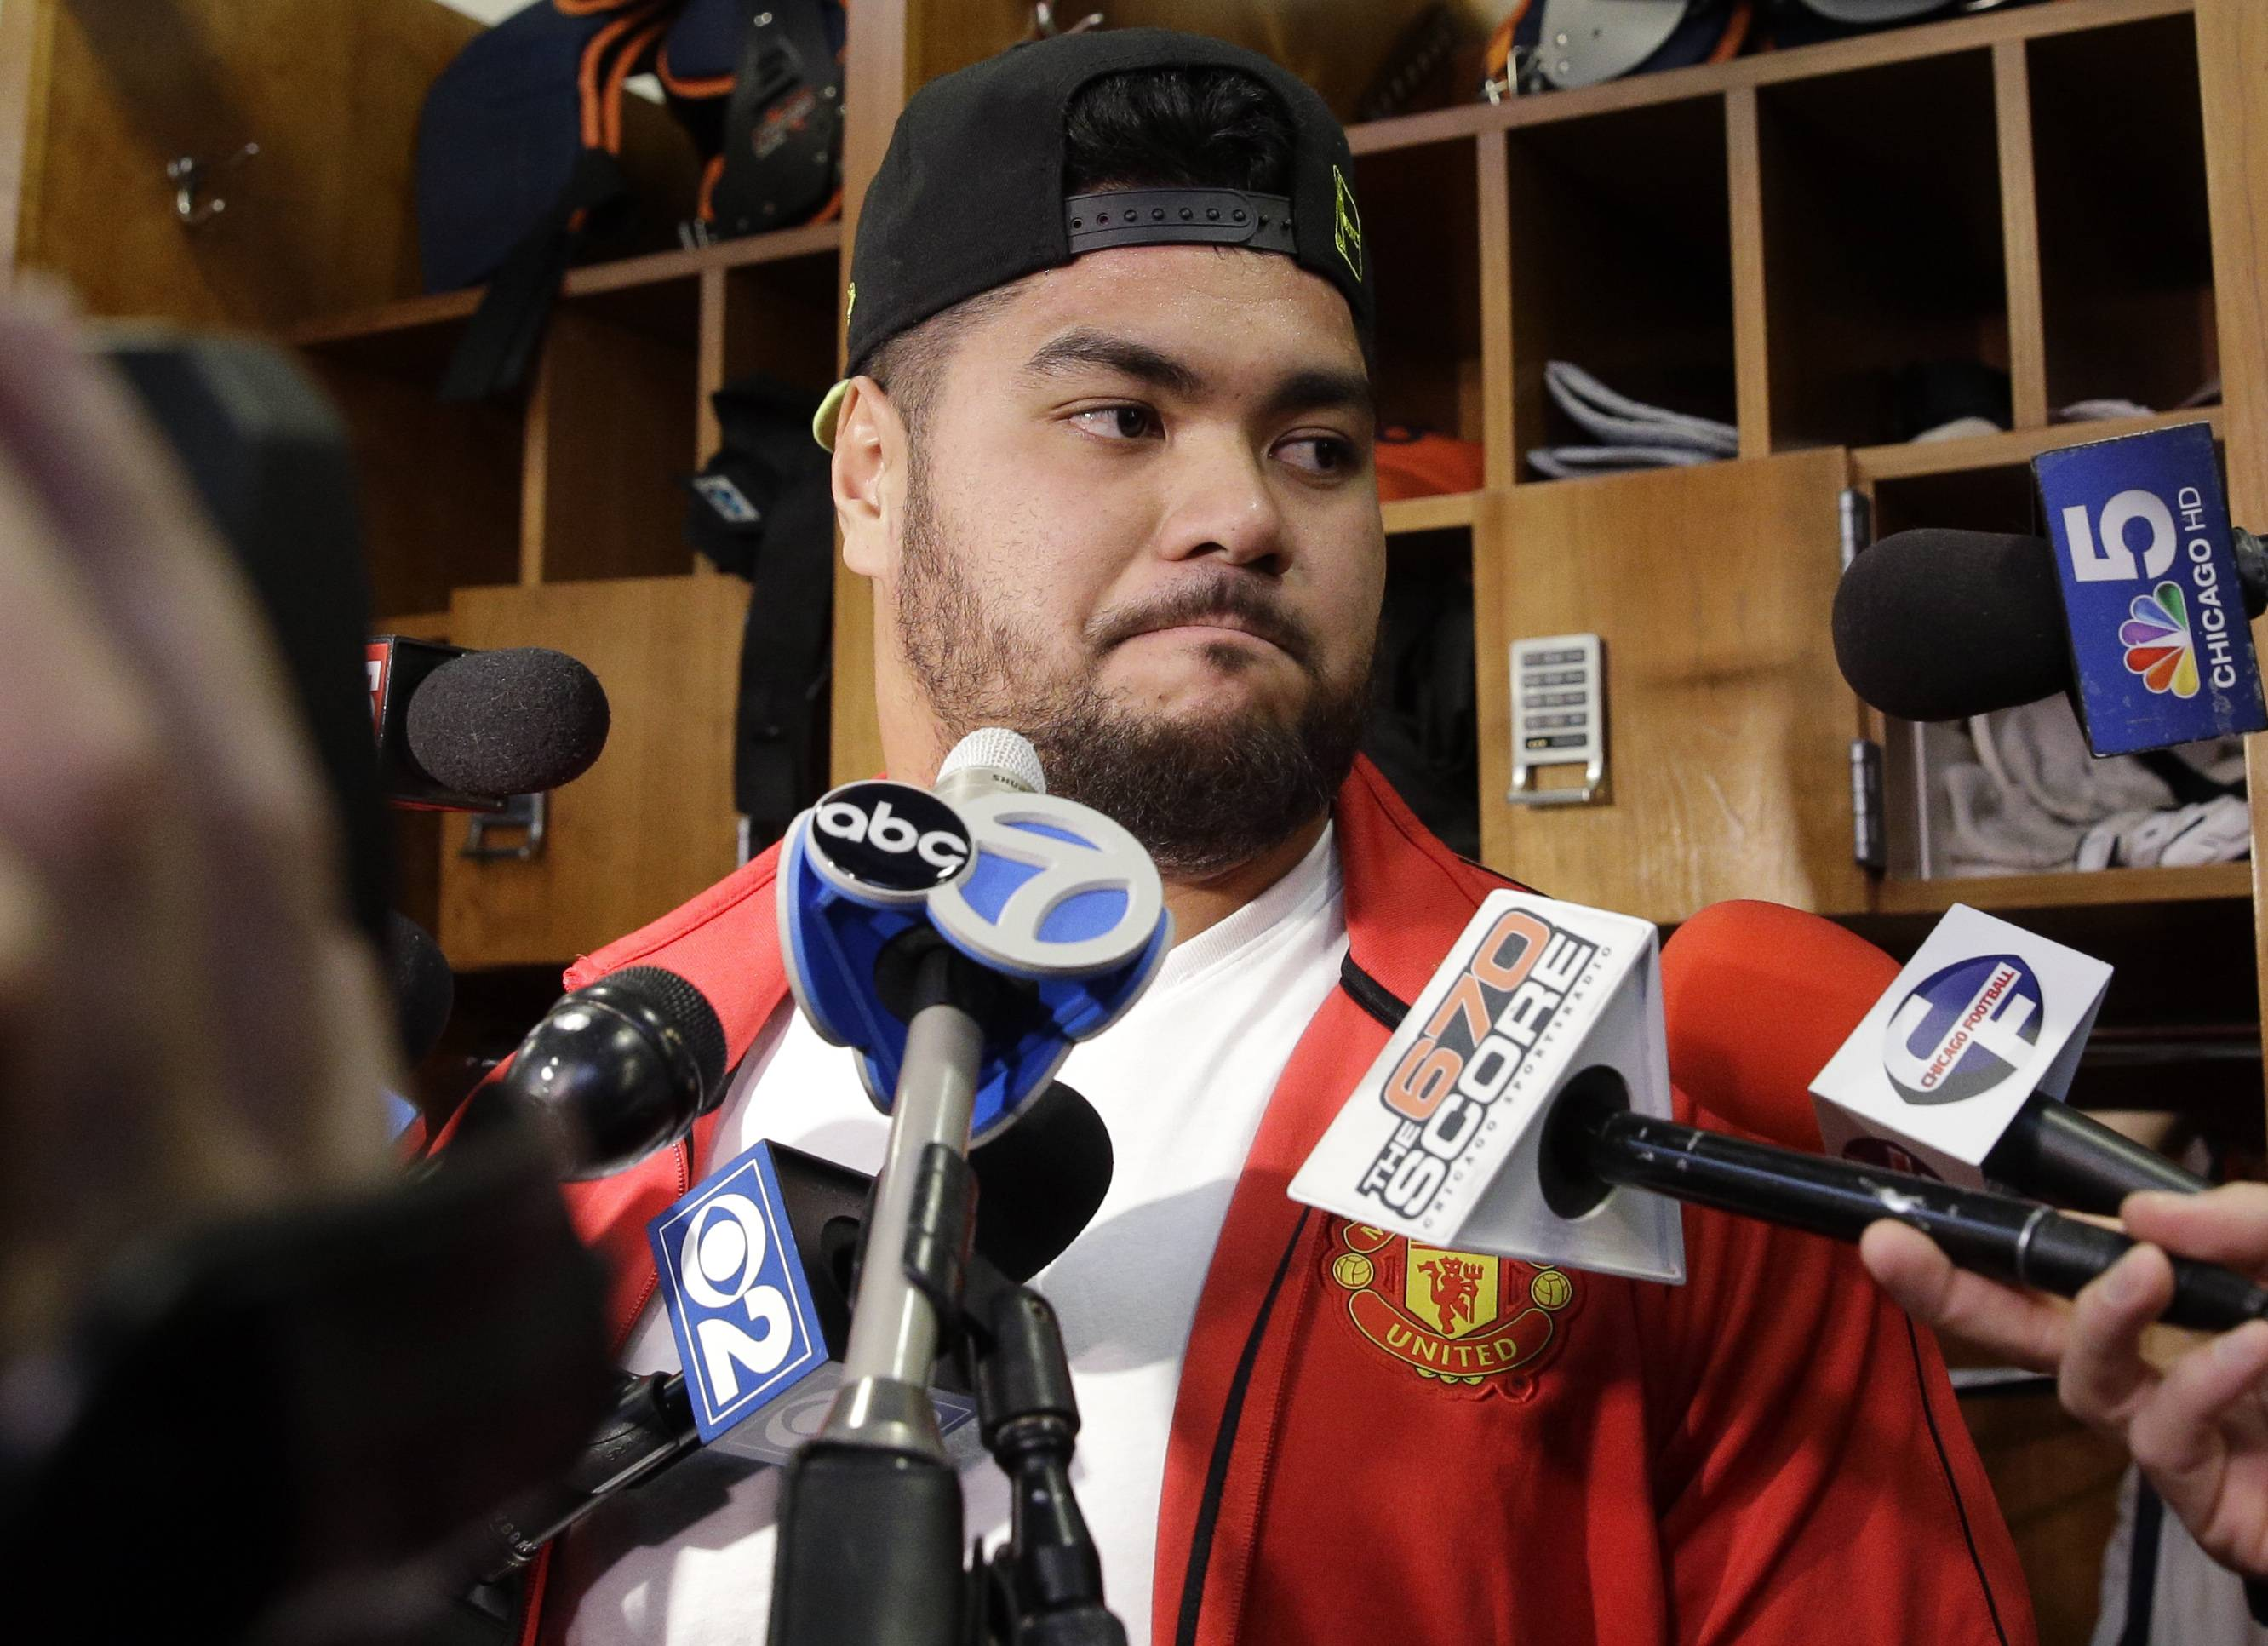 Job One on the Bears' D-line is re-signing tackle Stephen Paea, who is eligible for free agency. Coming off his best of four NFL seasons, Paea was third on the team with 6 sacks, and he is only 26 years old.